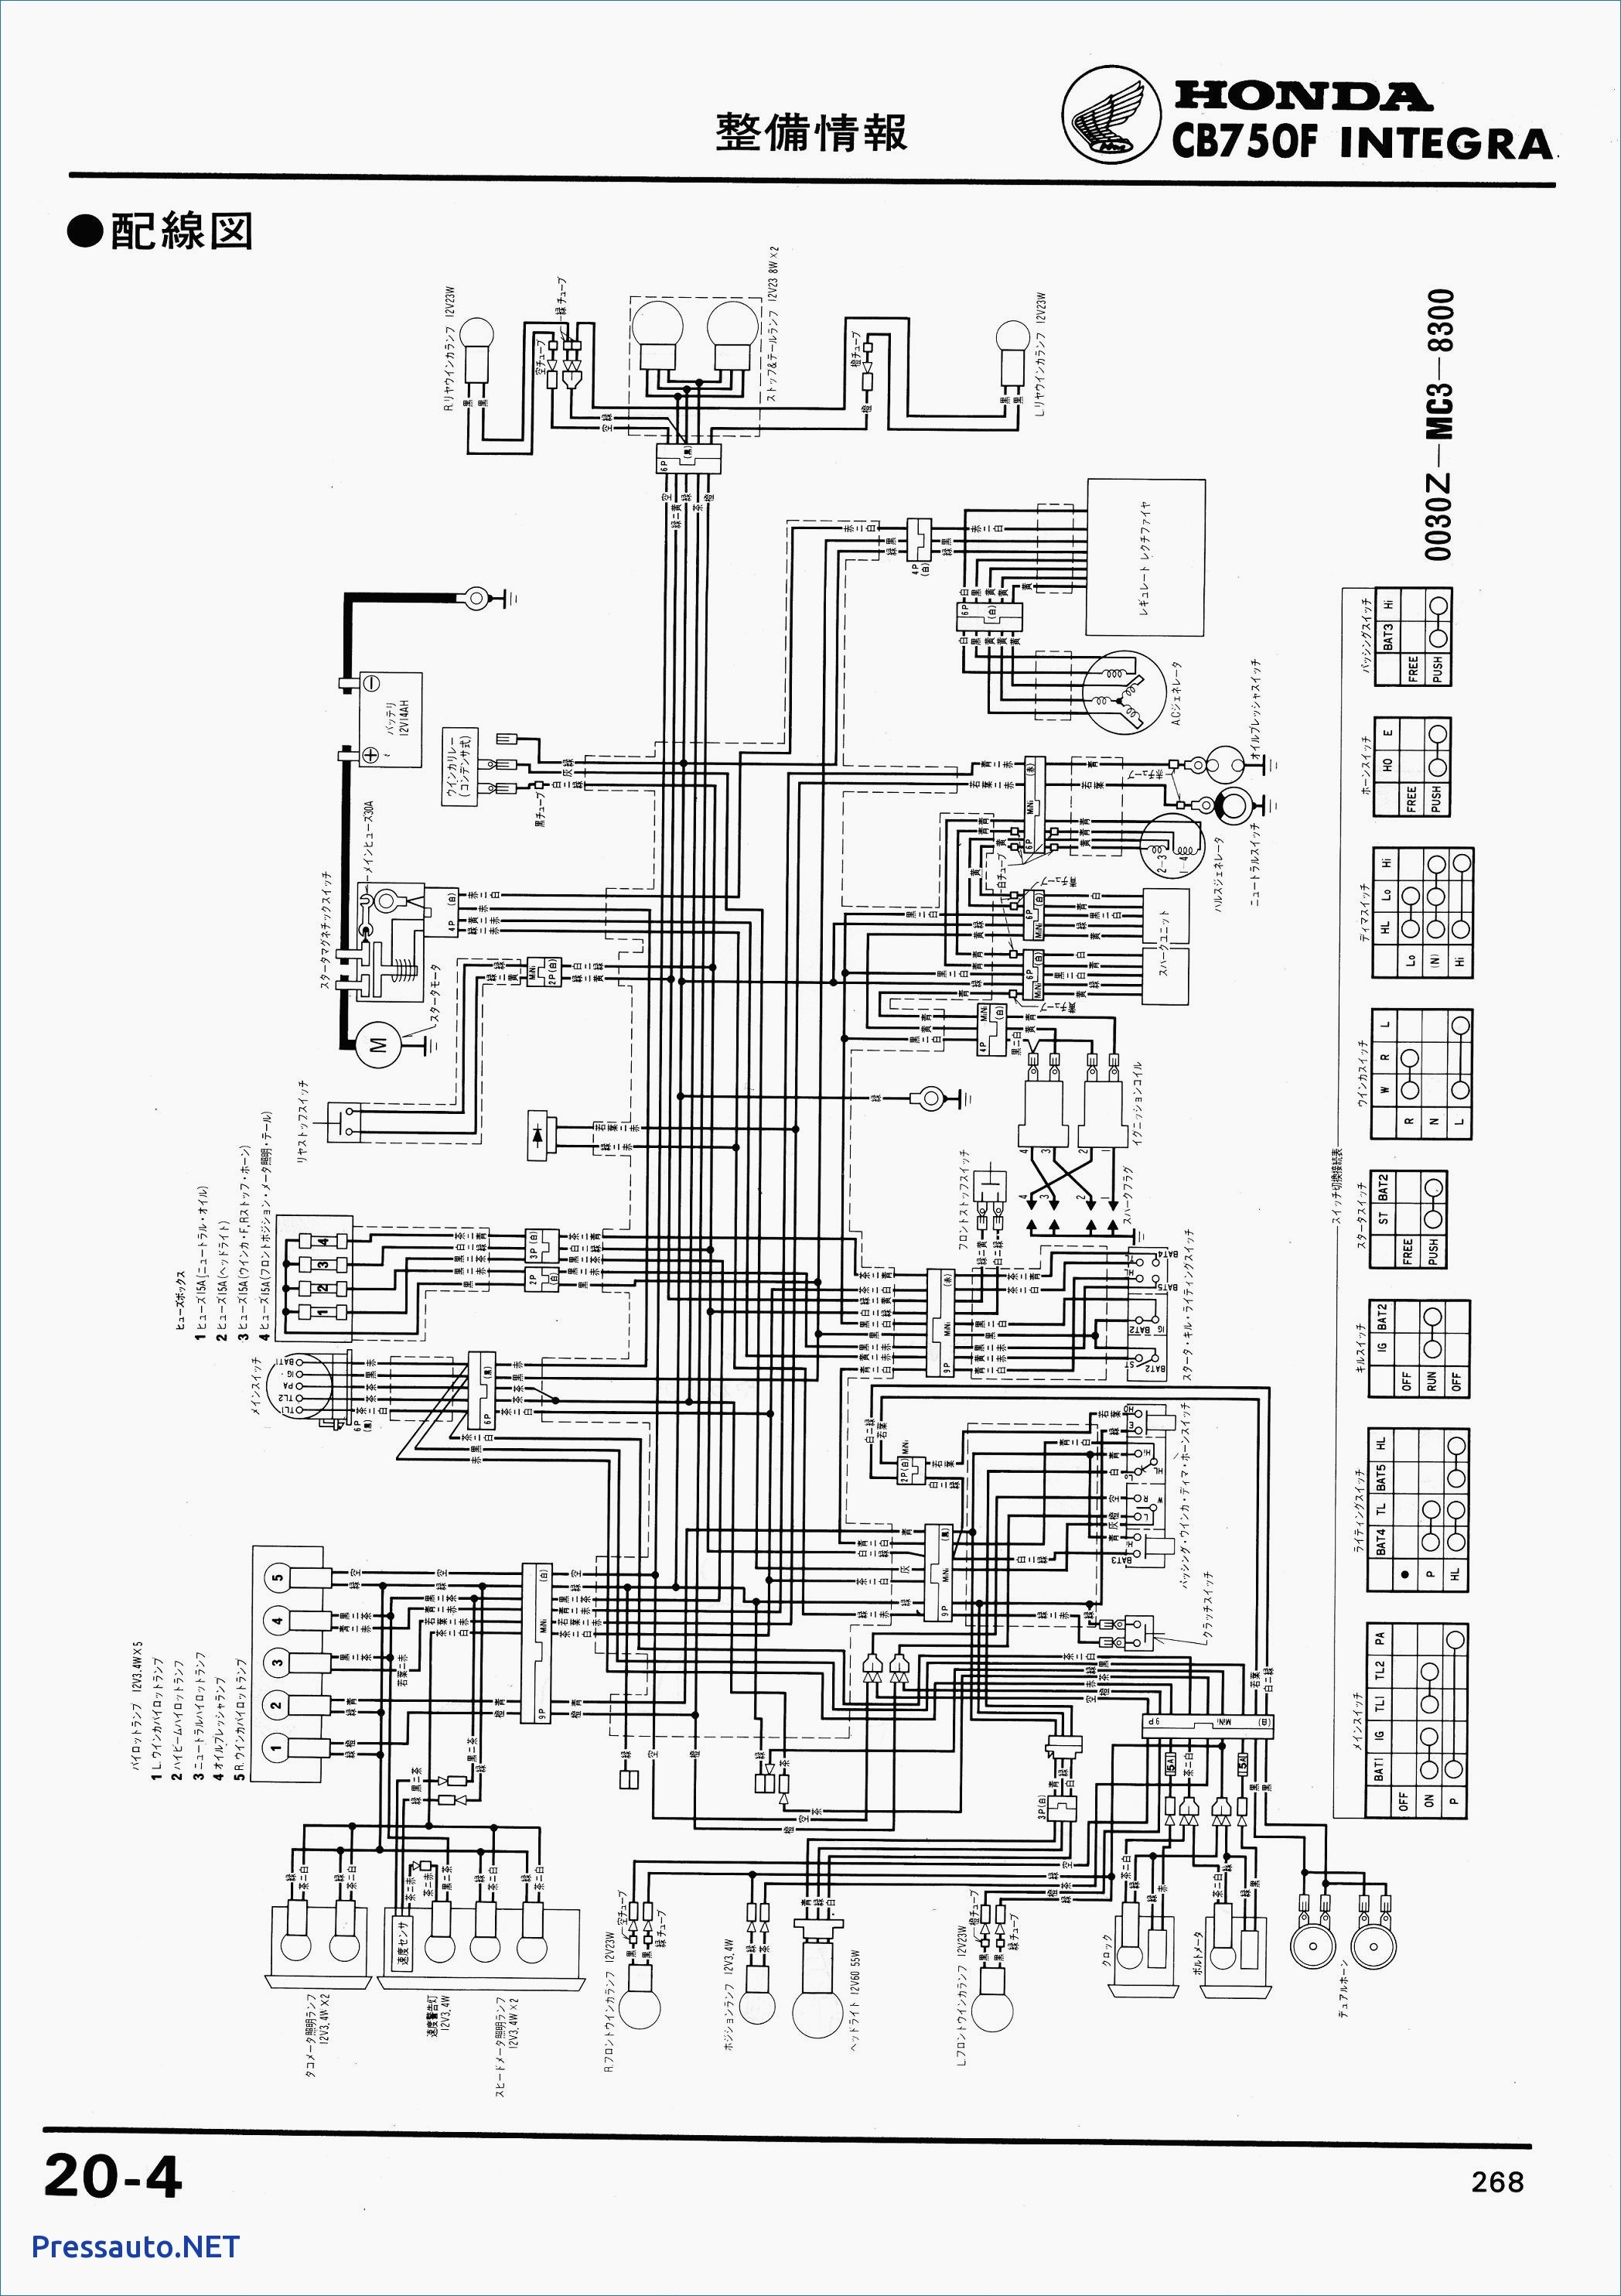 Yale Forklift Wiring Schematic. Engine. Wiring Diagram Images